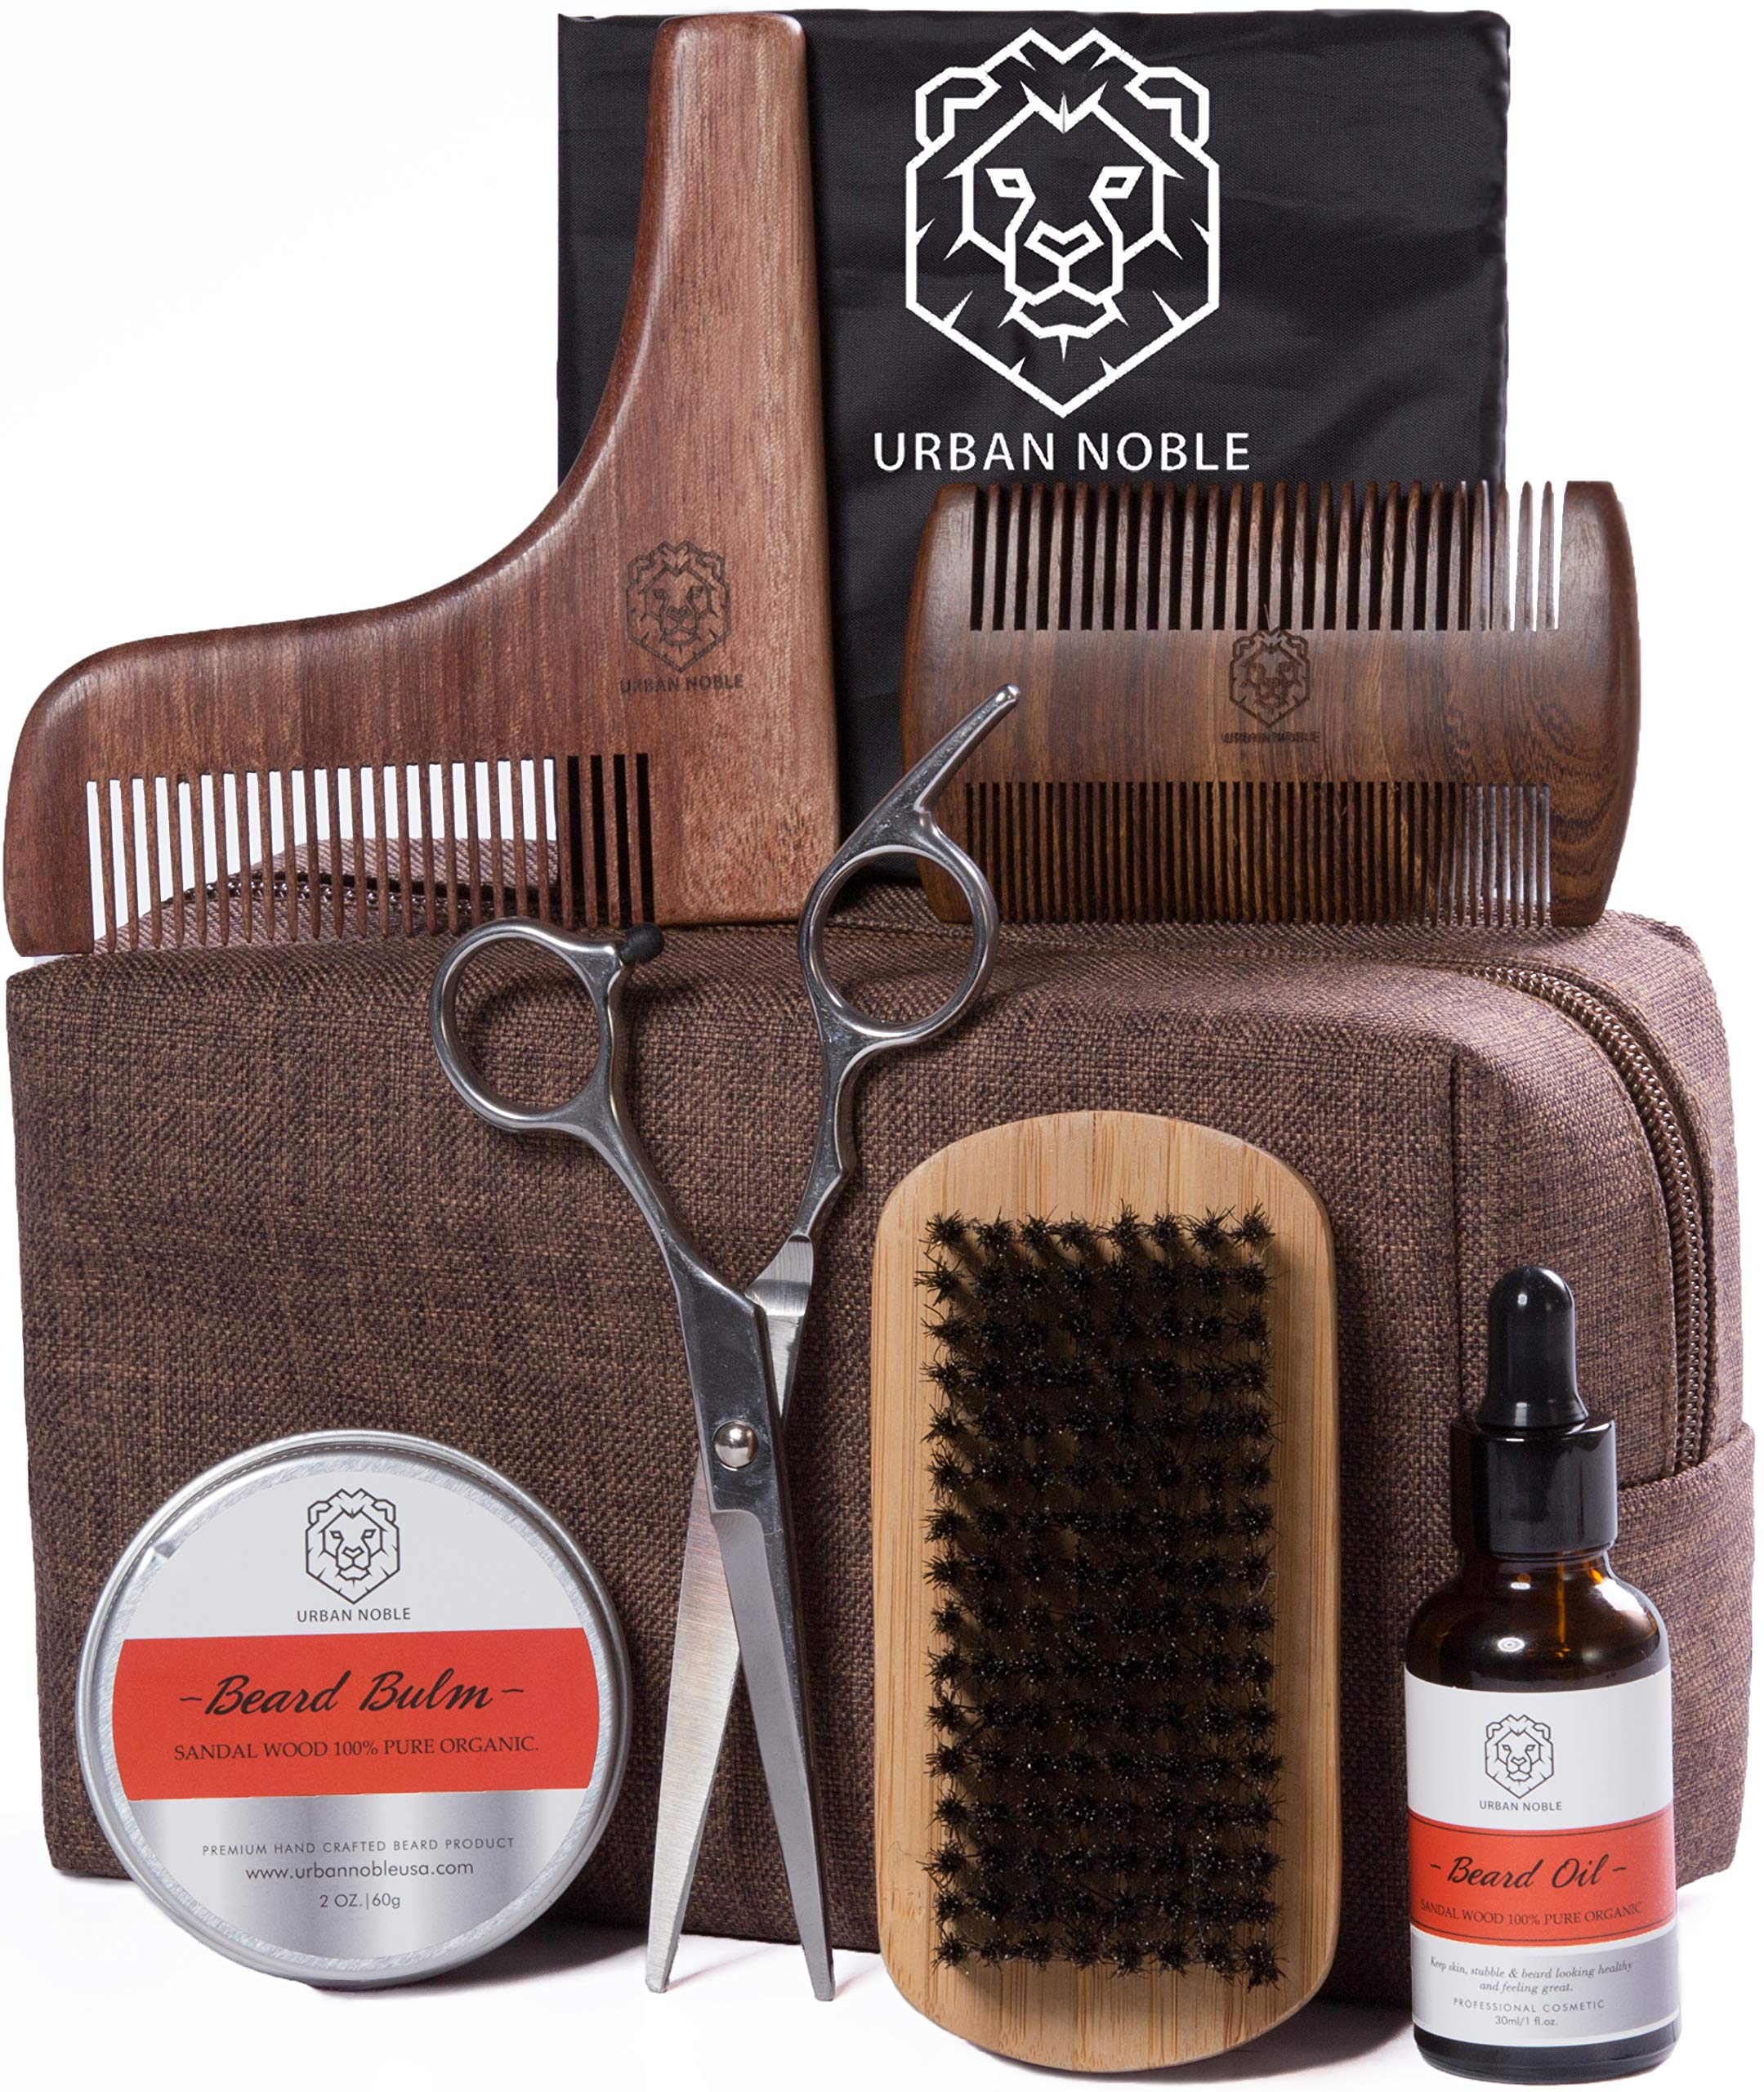 Beard Grooming Kit for Men Gift Set- Beard Oil Growth & Organic Balm For Man - Sandalwood Beard Comb -Beard Shaping Tool - Mens Black Beard Apron - Beard kit Gifts Set for Men/Fathers day, Valentines